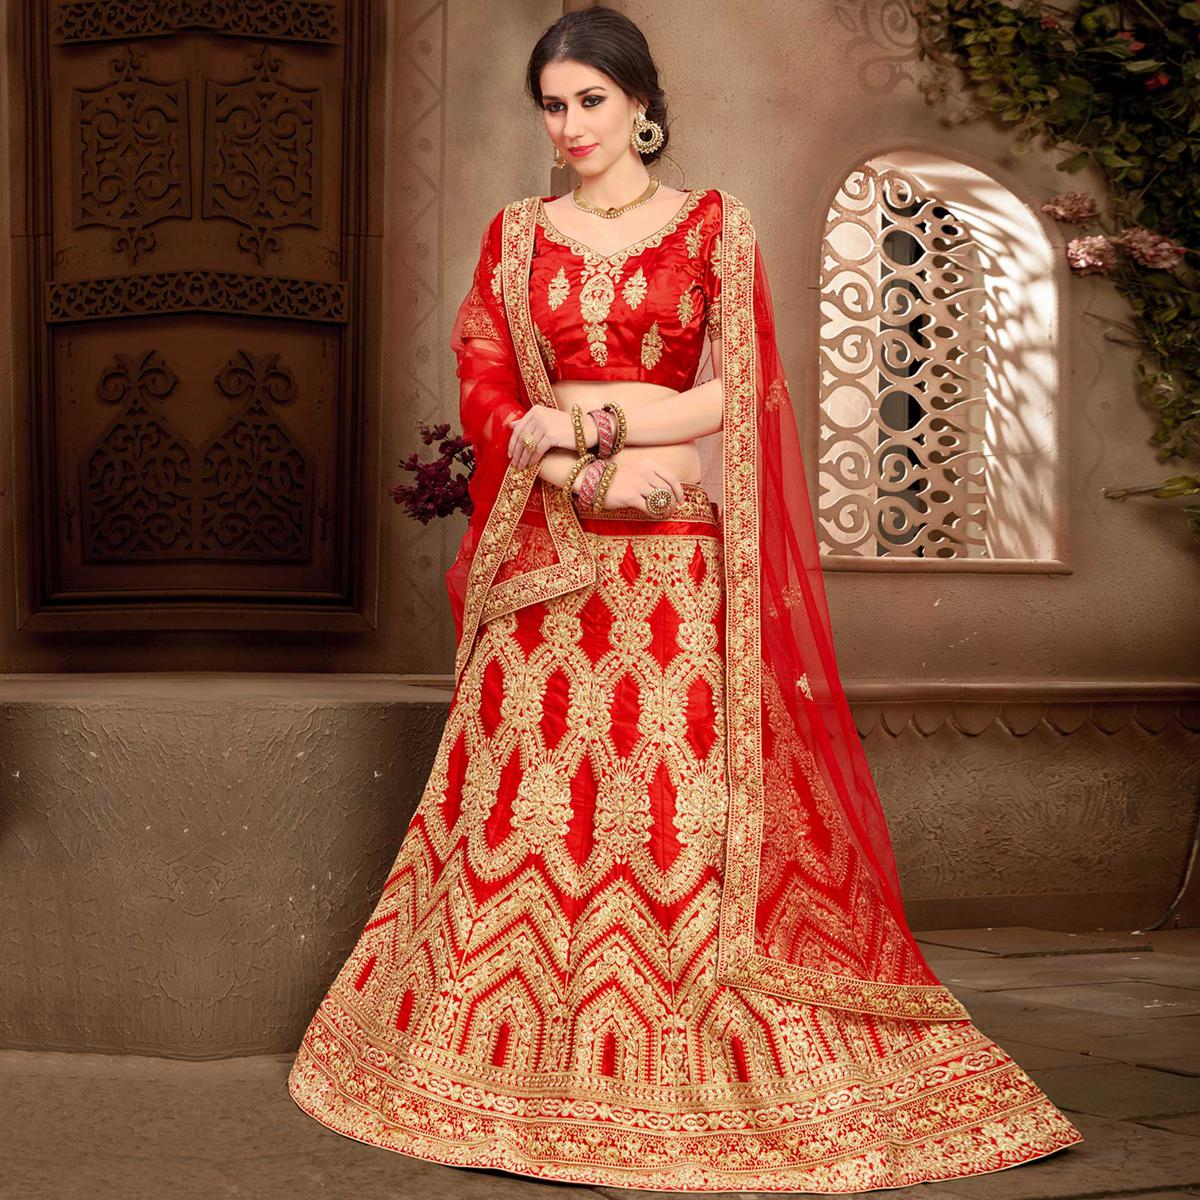 89112429b9 Buy Impressive Red Colored Designer Heavy Embroidered Wedding Wear Art Silk  Lehenga Choli for womens online India, Best Prices, Reviews - Peachmode